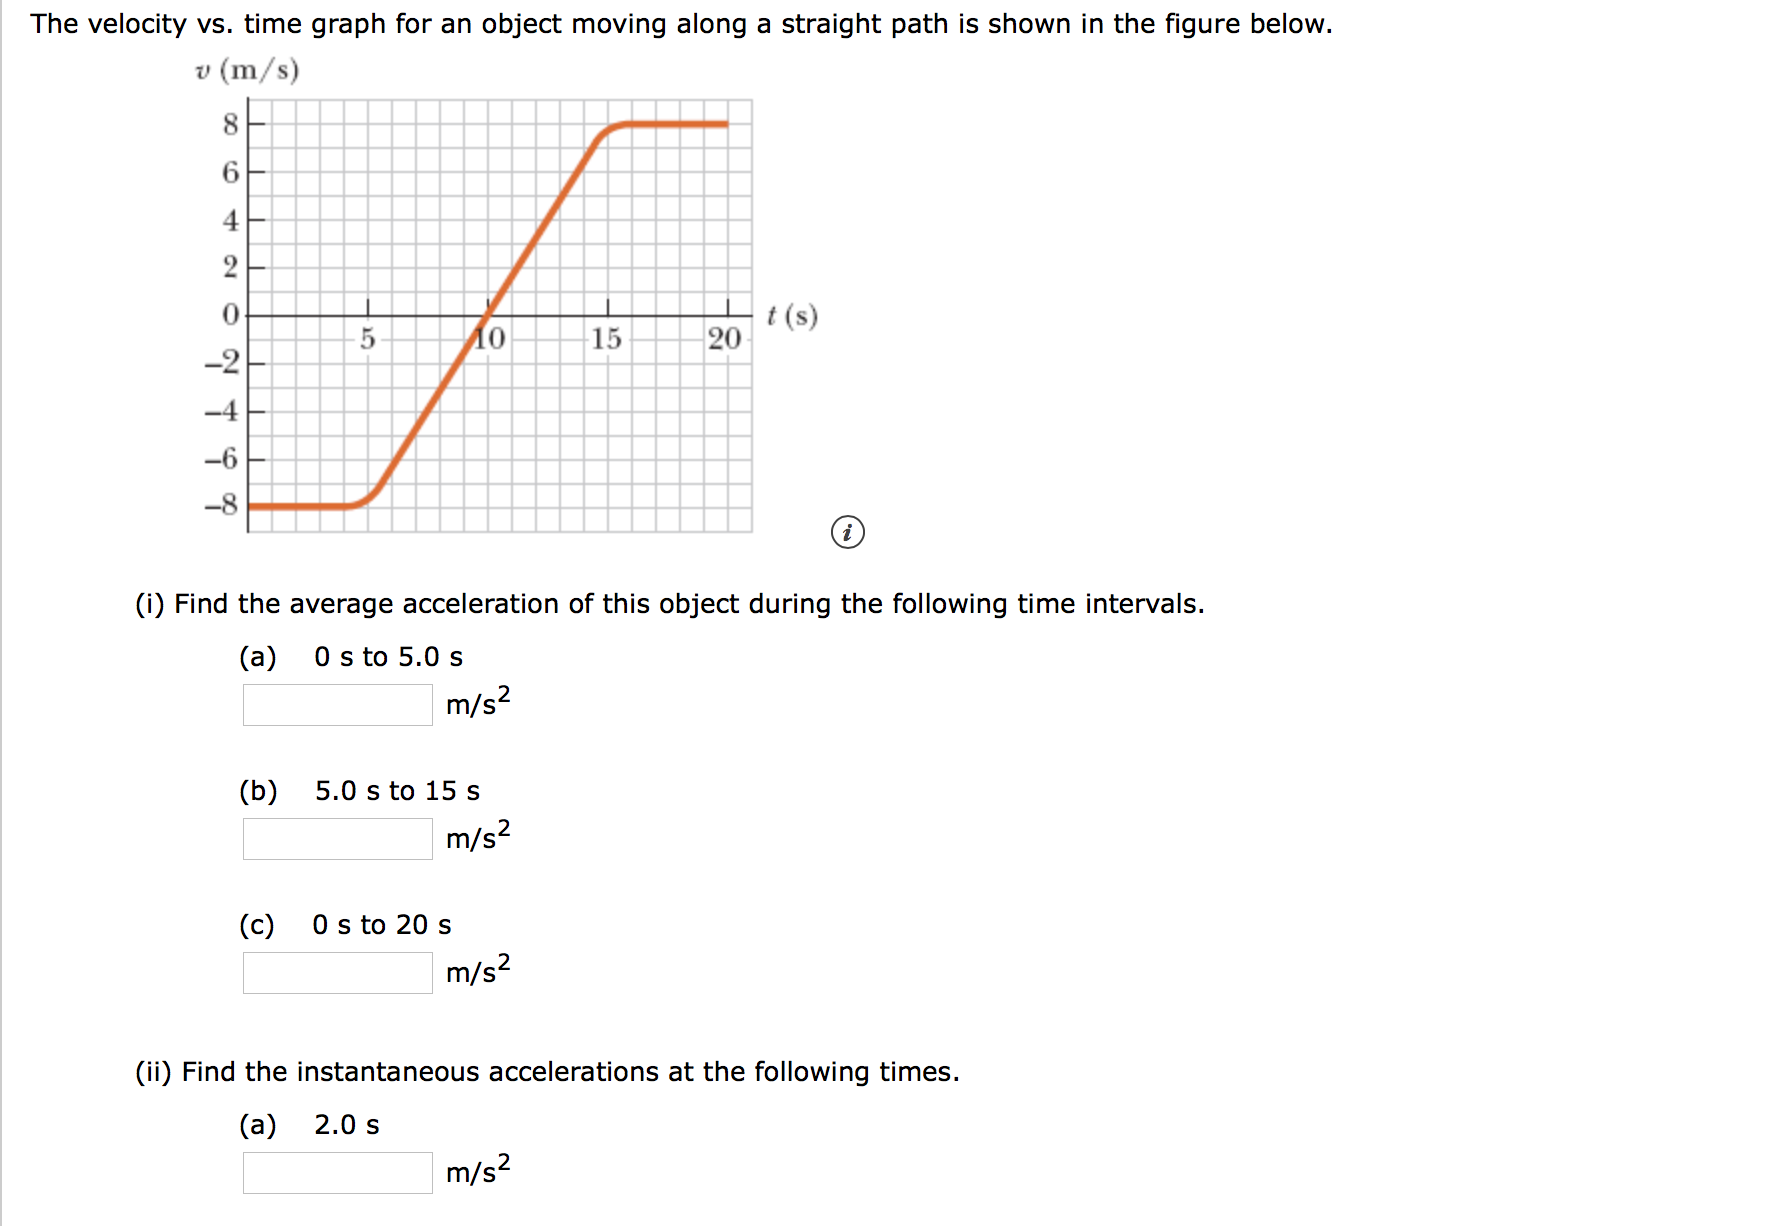 The velocity vs. time graph for an object moving along a straight path is shown in the figure below. (m/s) 6 4 2 t(s) 20 15 10 -2 -4 -8 (i) Find the average acceleration of this object during the following time intervals. 0 s to 5.0 s (a) m/s2 5.0 s to 15 s (b) m/s2 (c) 0 s to 20 s m/s2 (ii) Find the instantaneous accelerations at the following times. 2.0 s (a) m/s2